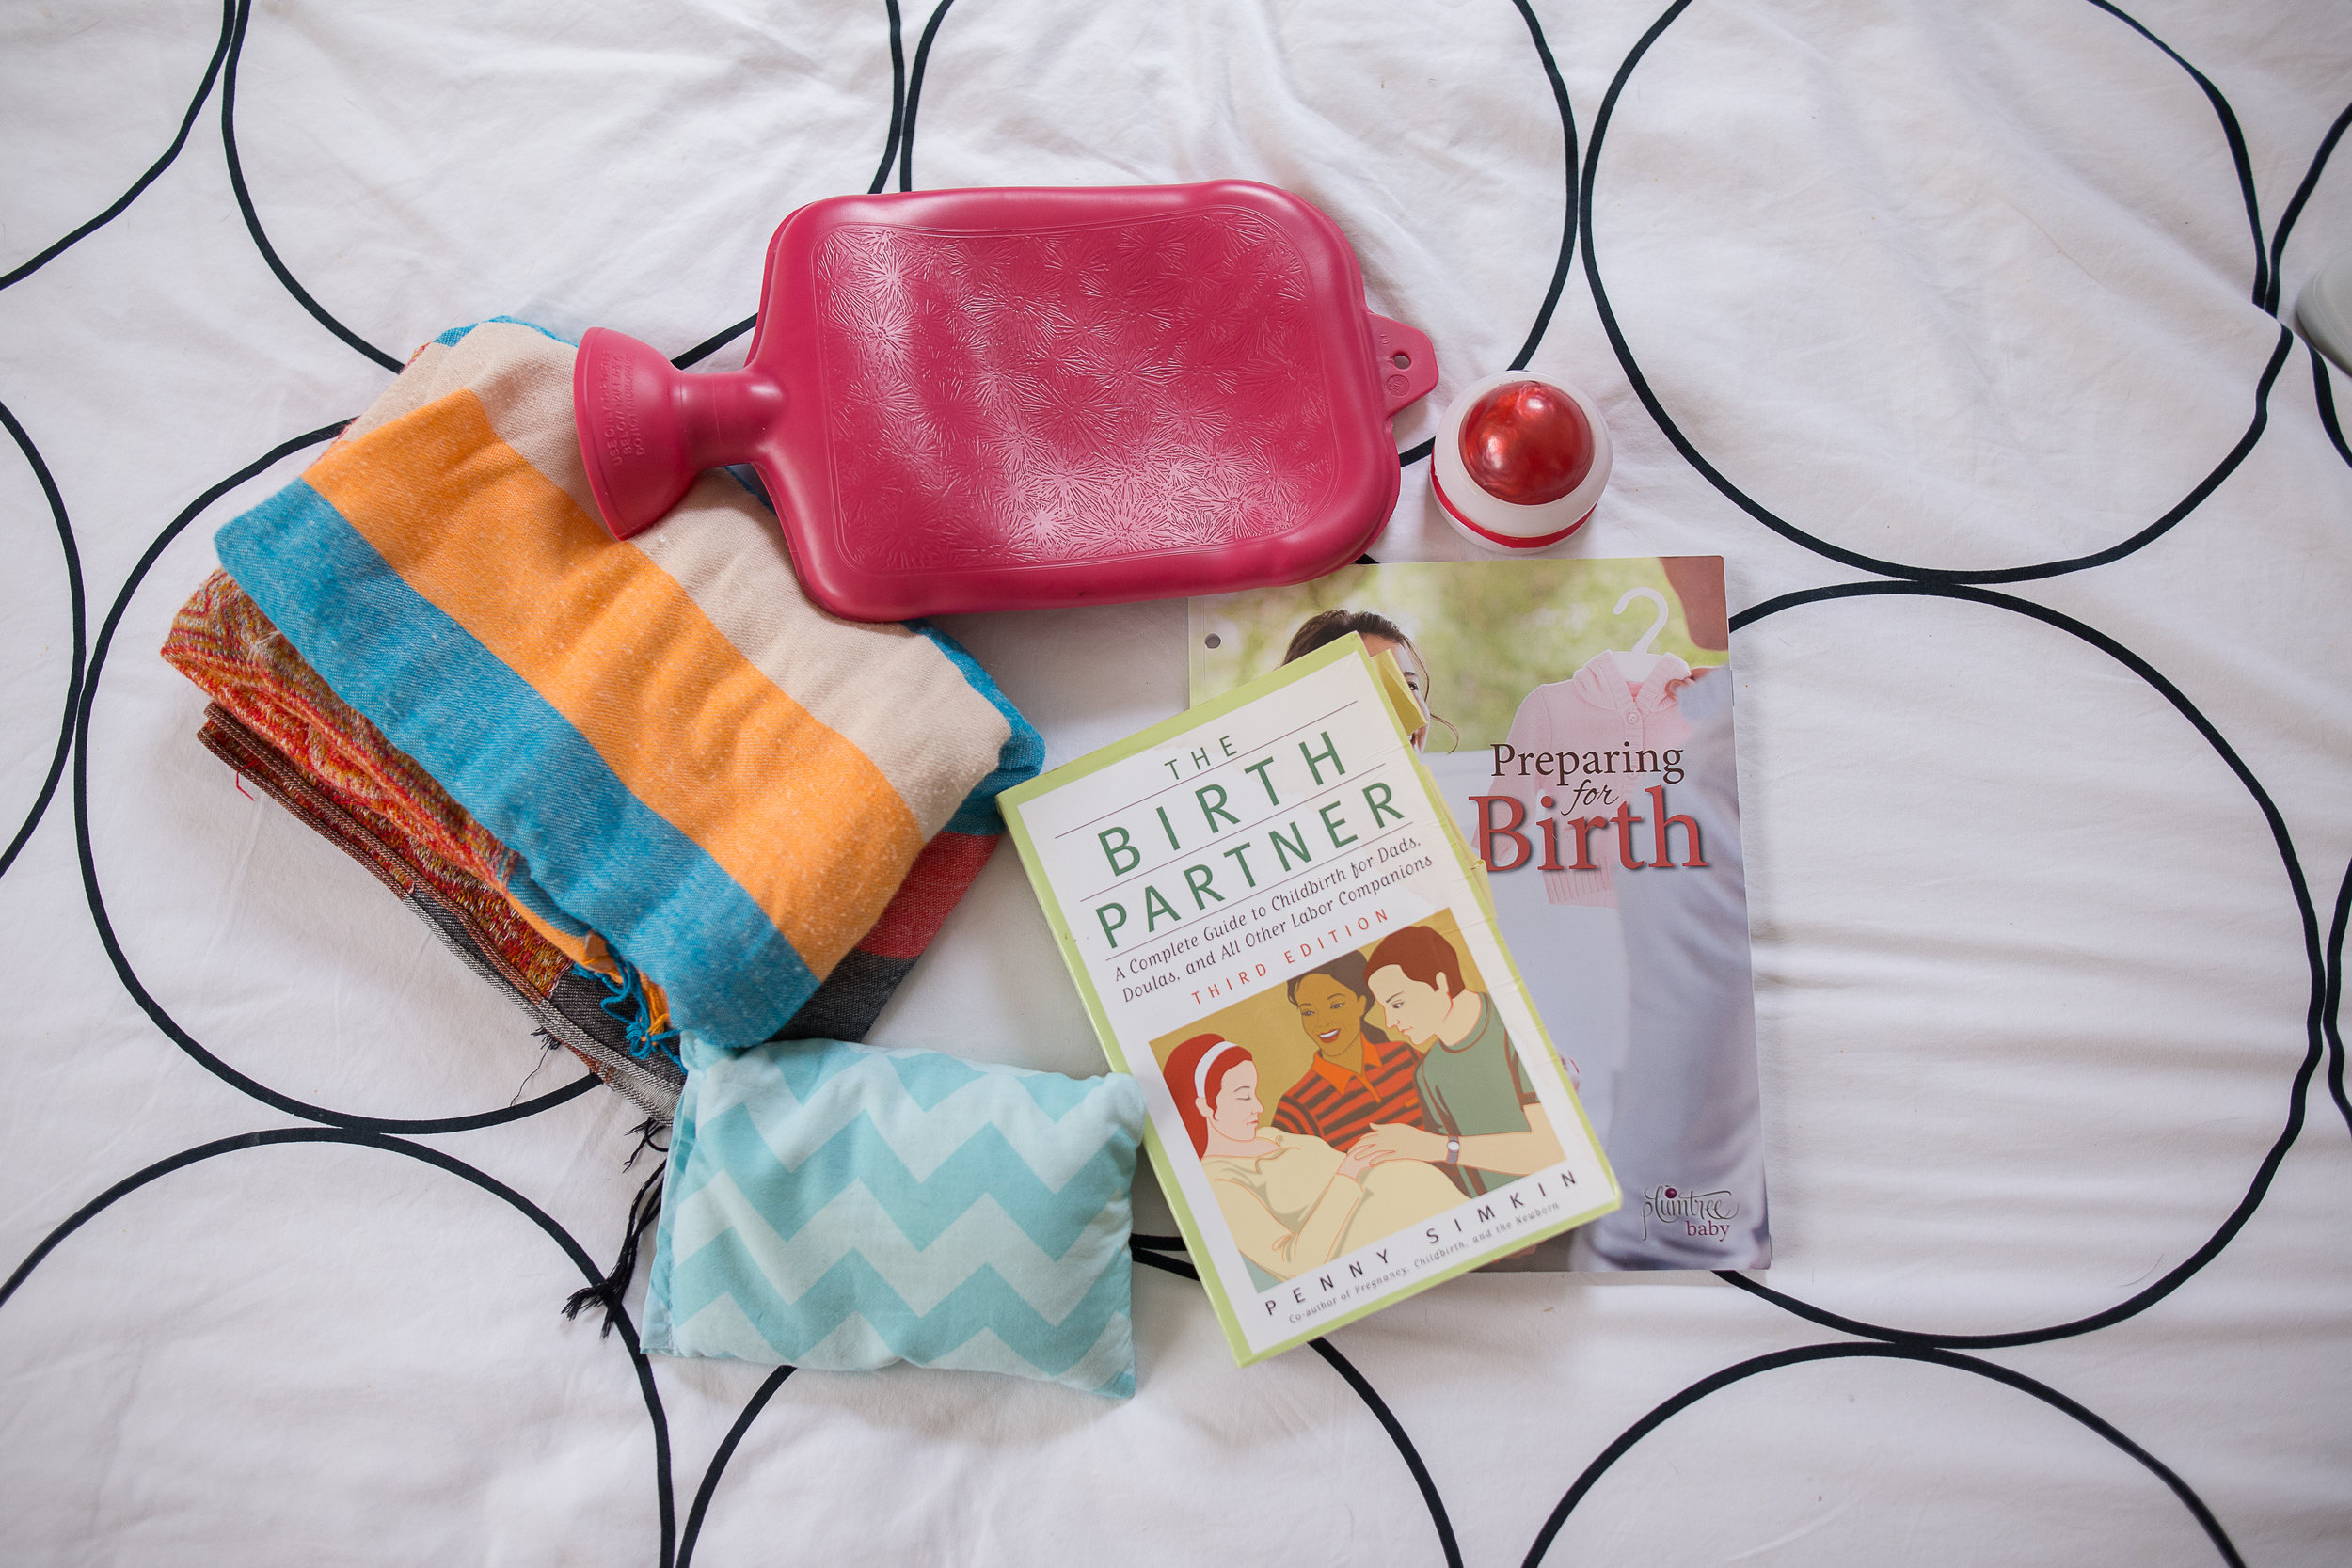 Birth Planning and Childbirth Classes